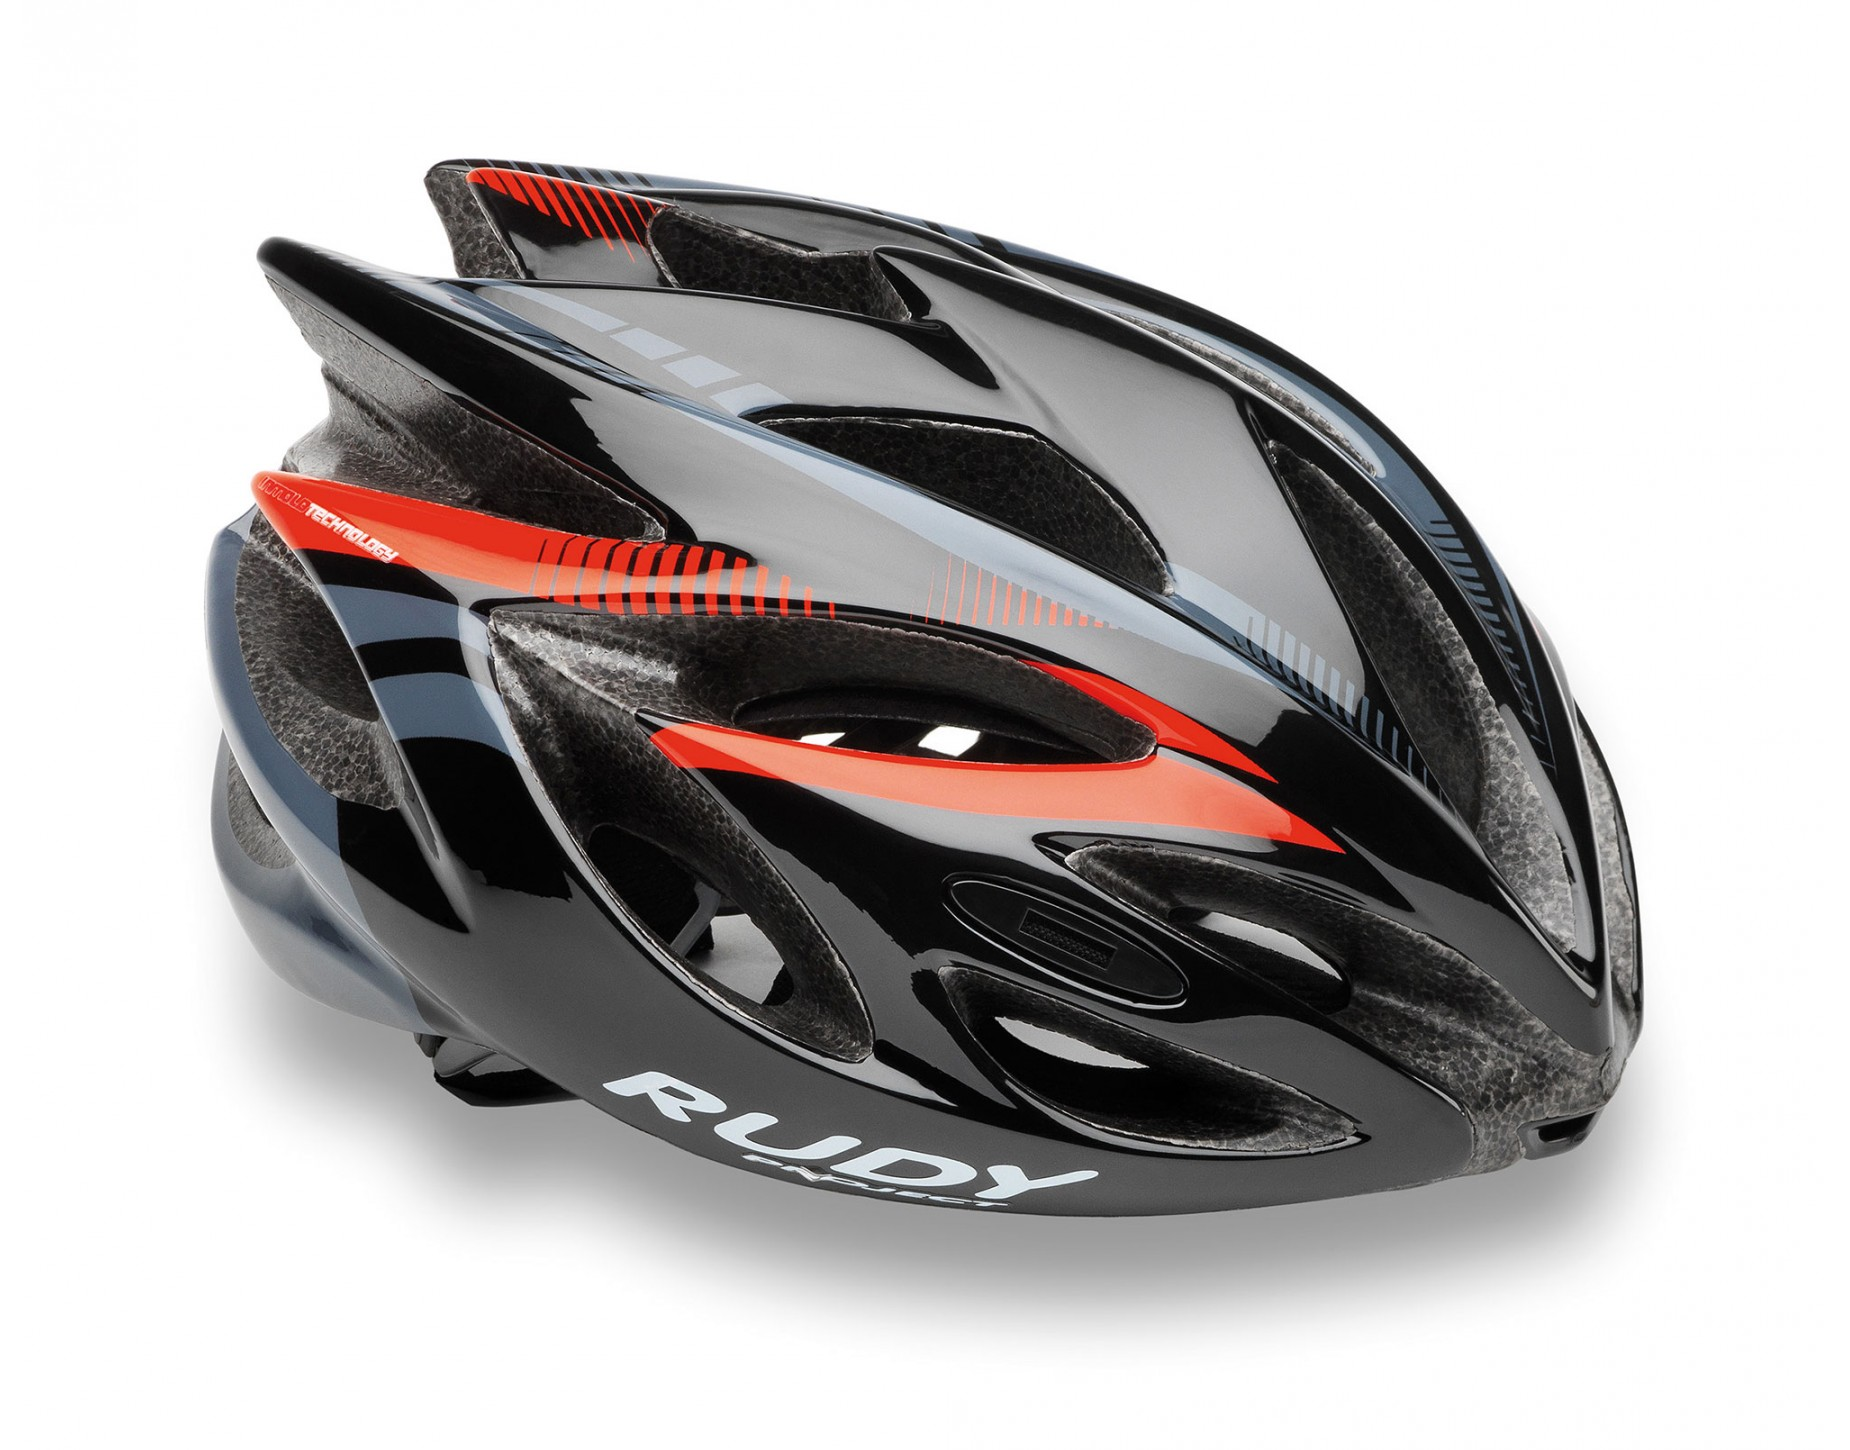 the helmet project These tips make choosing the right bike helmet easy includes info about types of helmets, construction, features, sizing and adjustment.